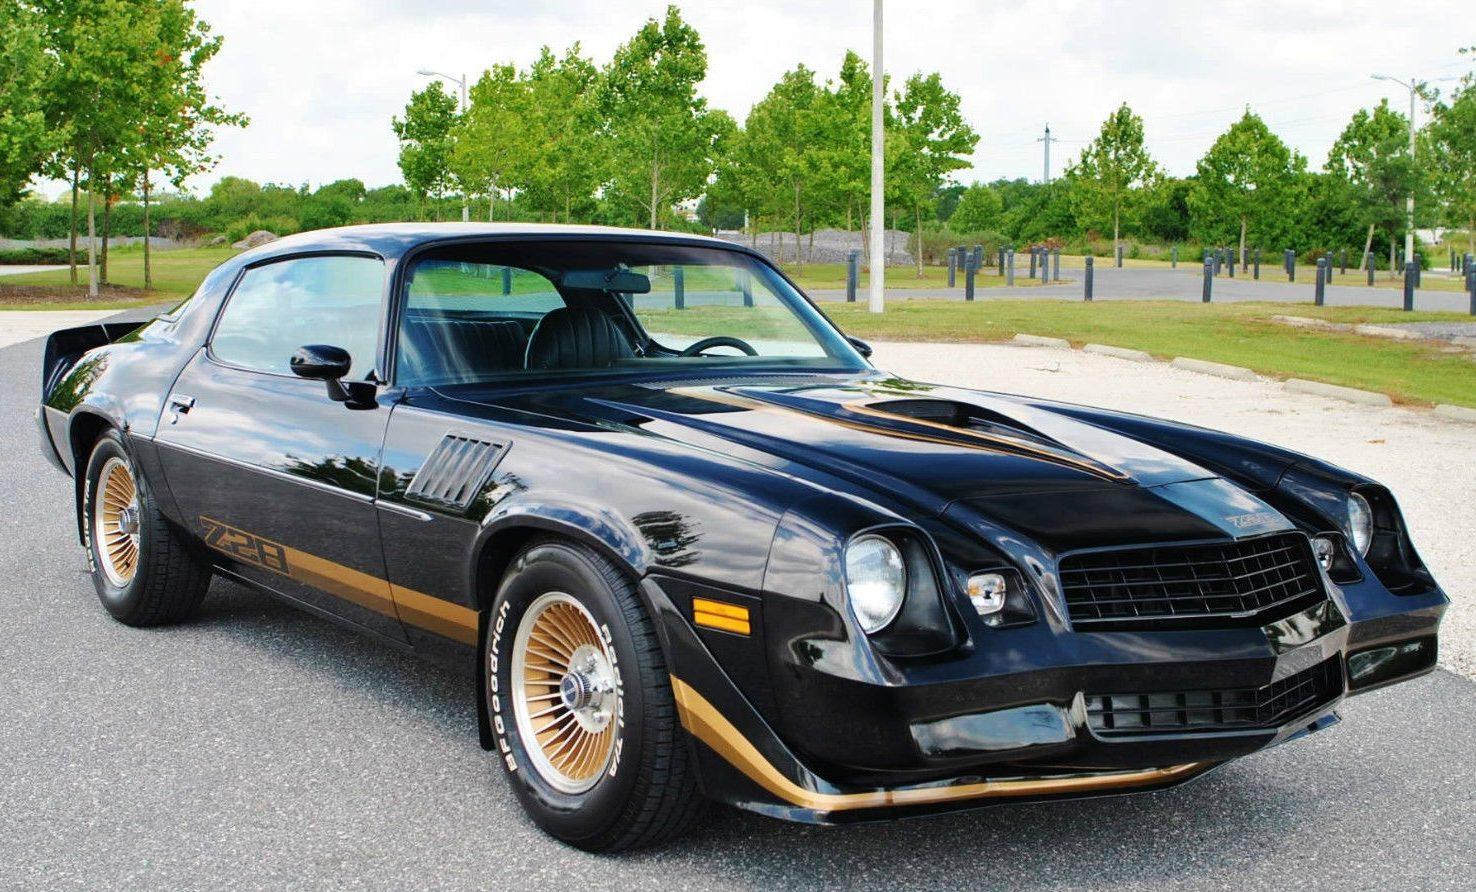 Facebook to the Rescue! How One Man Used Social Media to Bring His Stolen Vintage Camaro Back Home